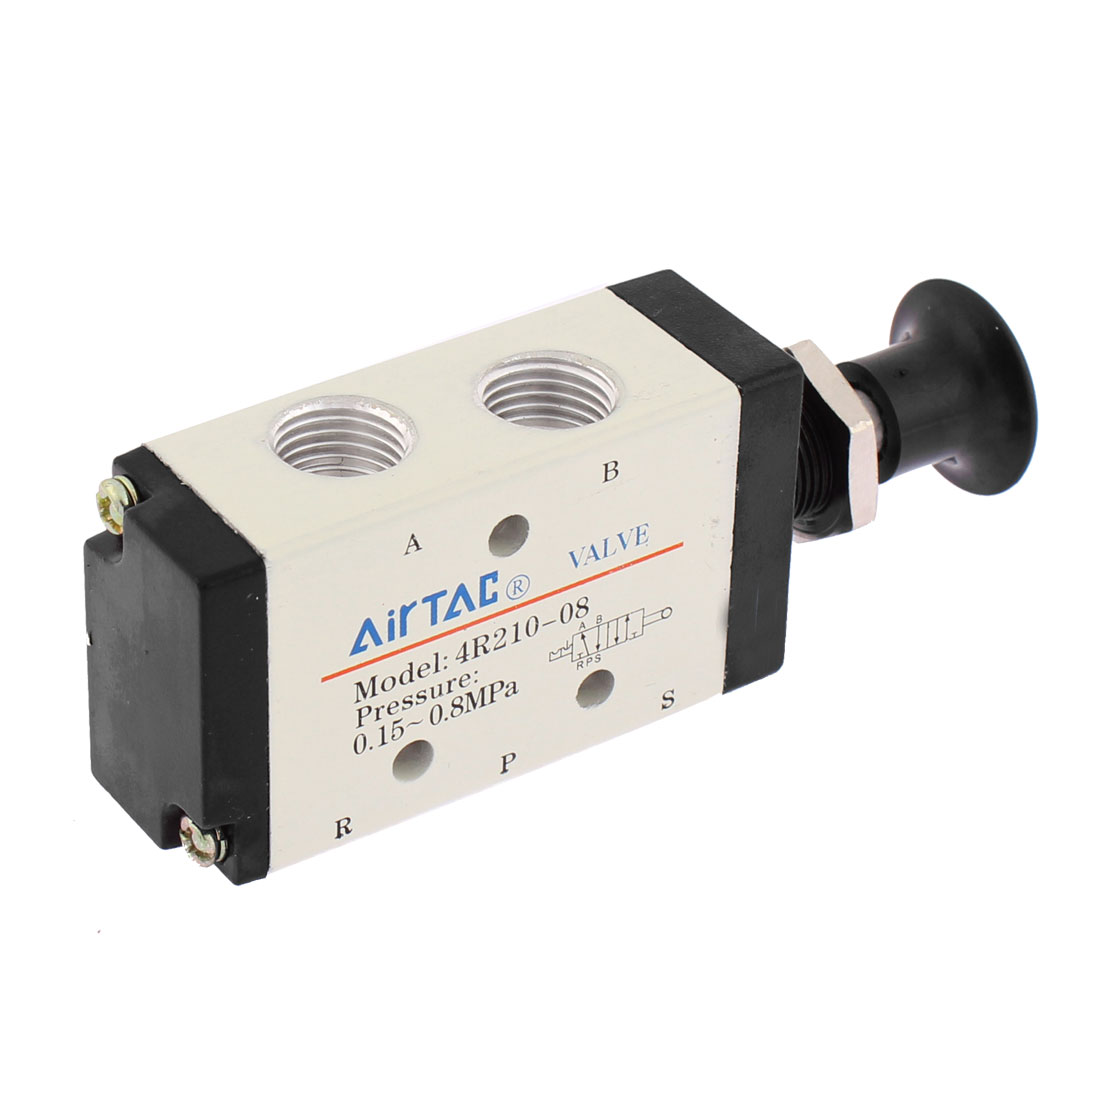 4R210-08 5 Way 2 Position Hand Lever Solenoid Valve